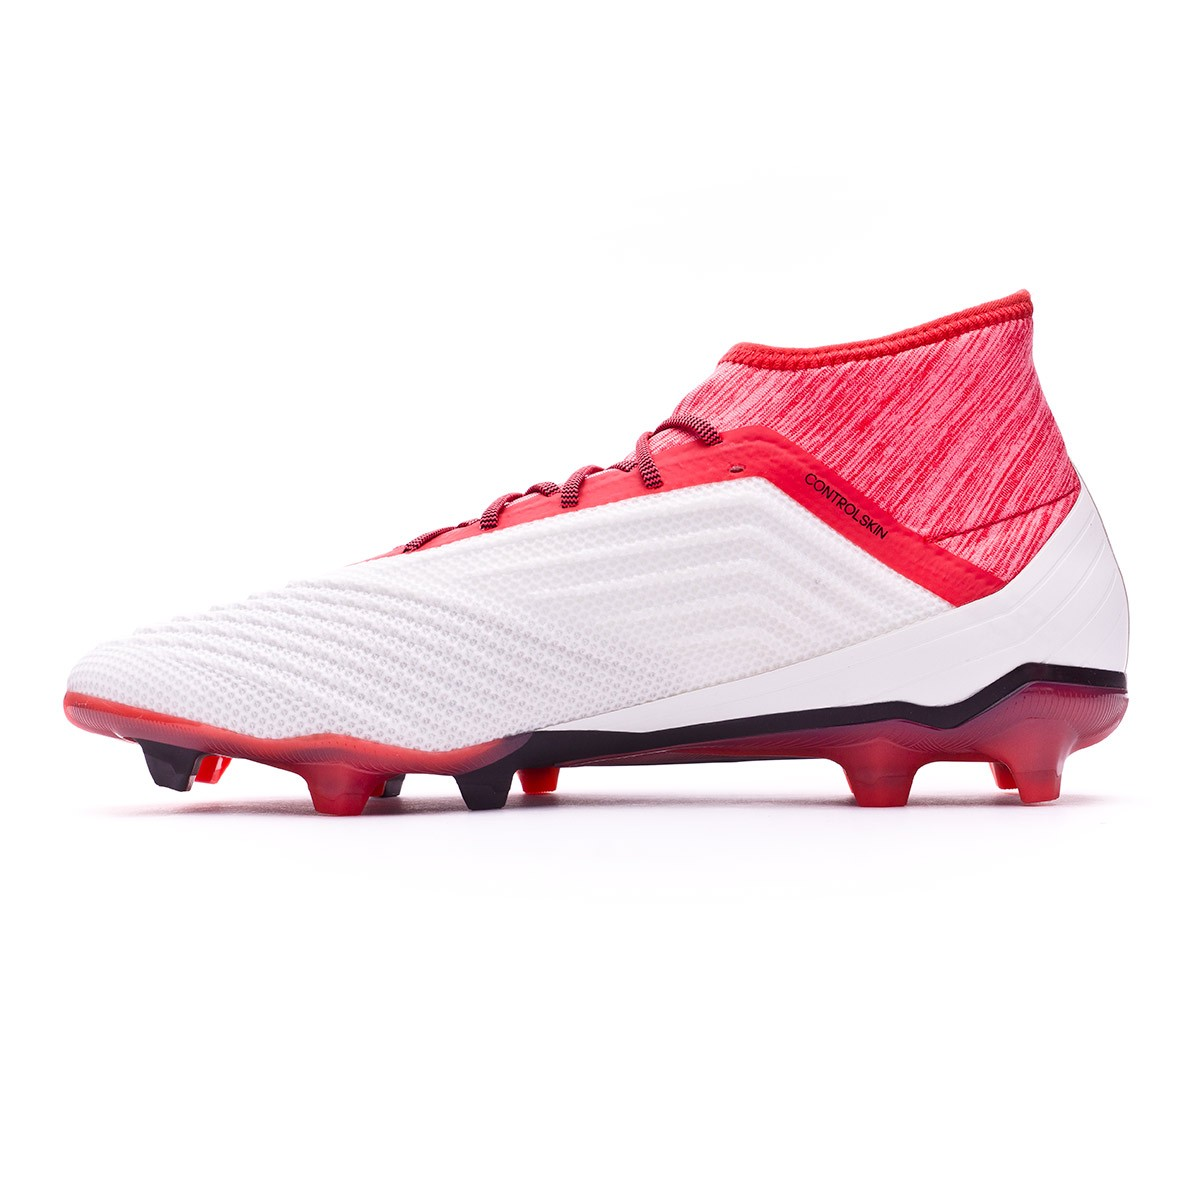 21488ace361 Football Boots adidas Predator 18.2 FG White-Core black-Real coral - Tienda  de fútbol Fútbol Emotion